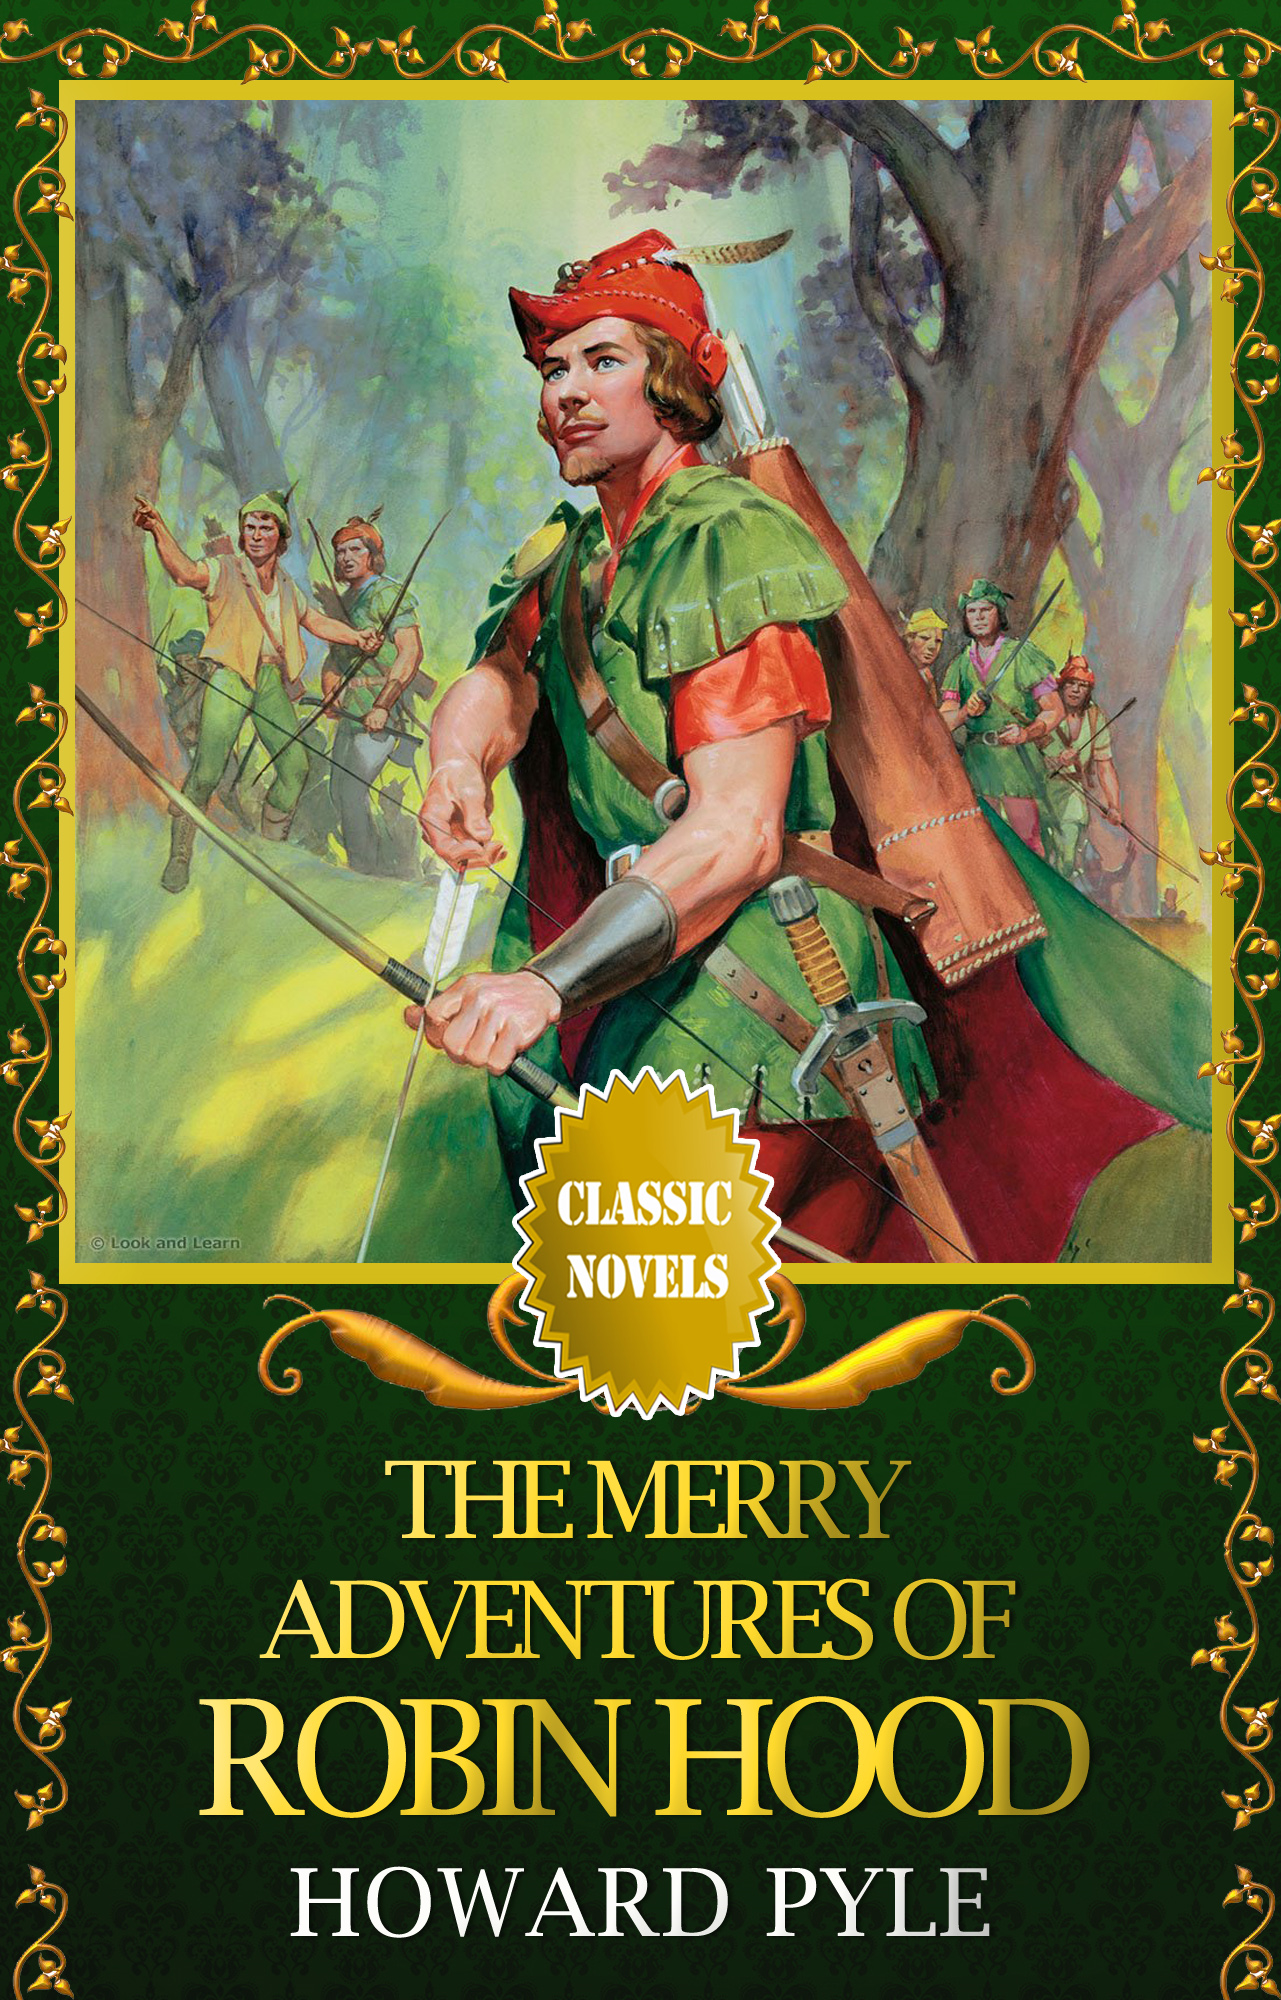 book report robin hood howard pyle The merry adventures of robin hood by howard pyle  robin hood and his band of merry men offer young readers more than enough adventure and thrills to keep them .